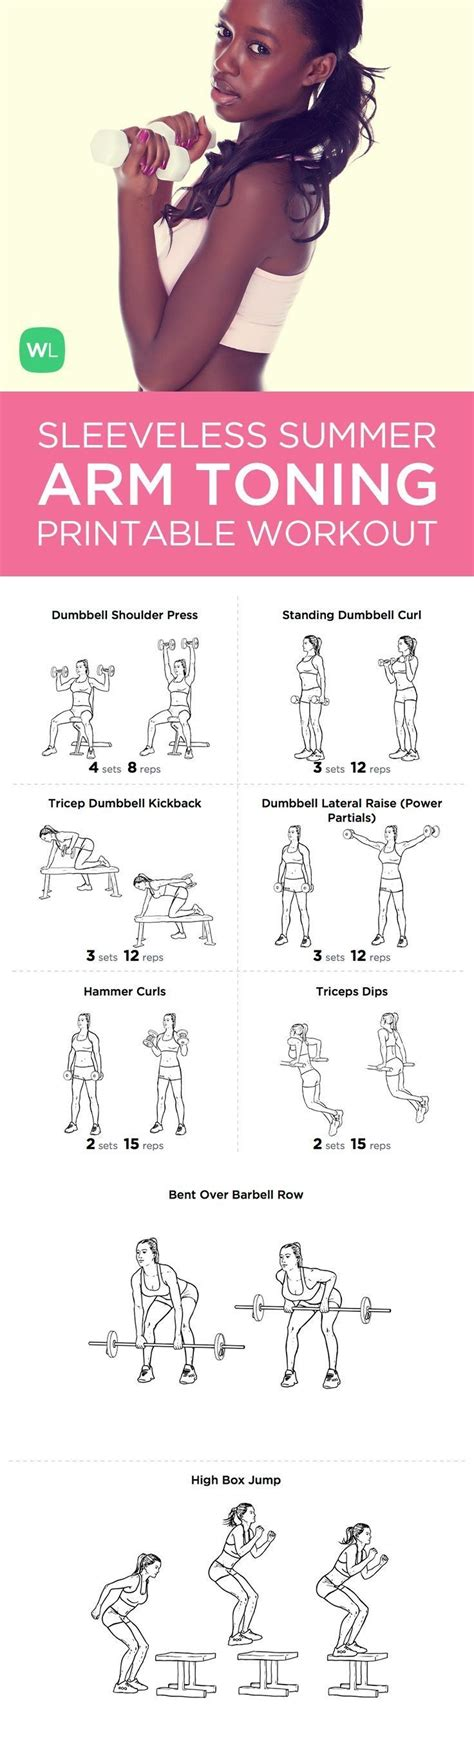 printable workout plan to lose weight and tone up 15 minute summer sleeveless arms toning printable workout